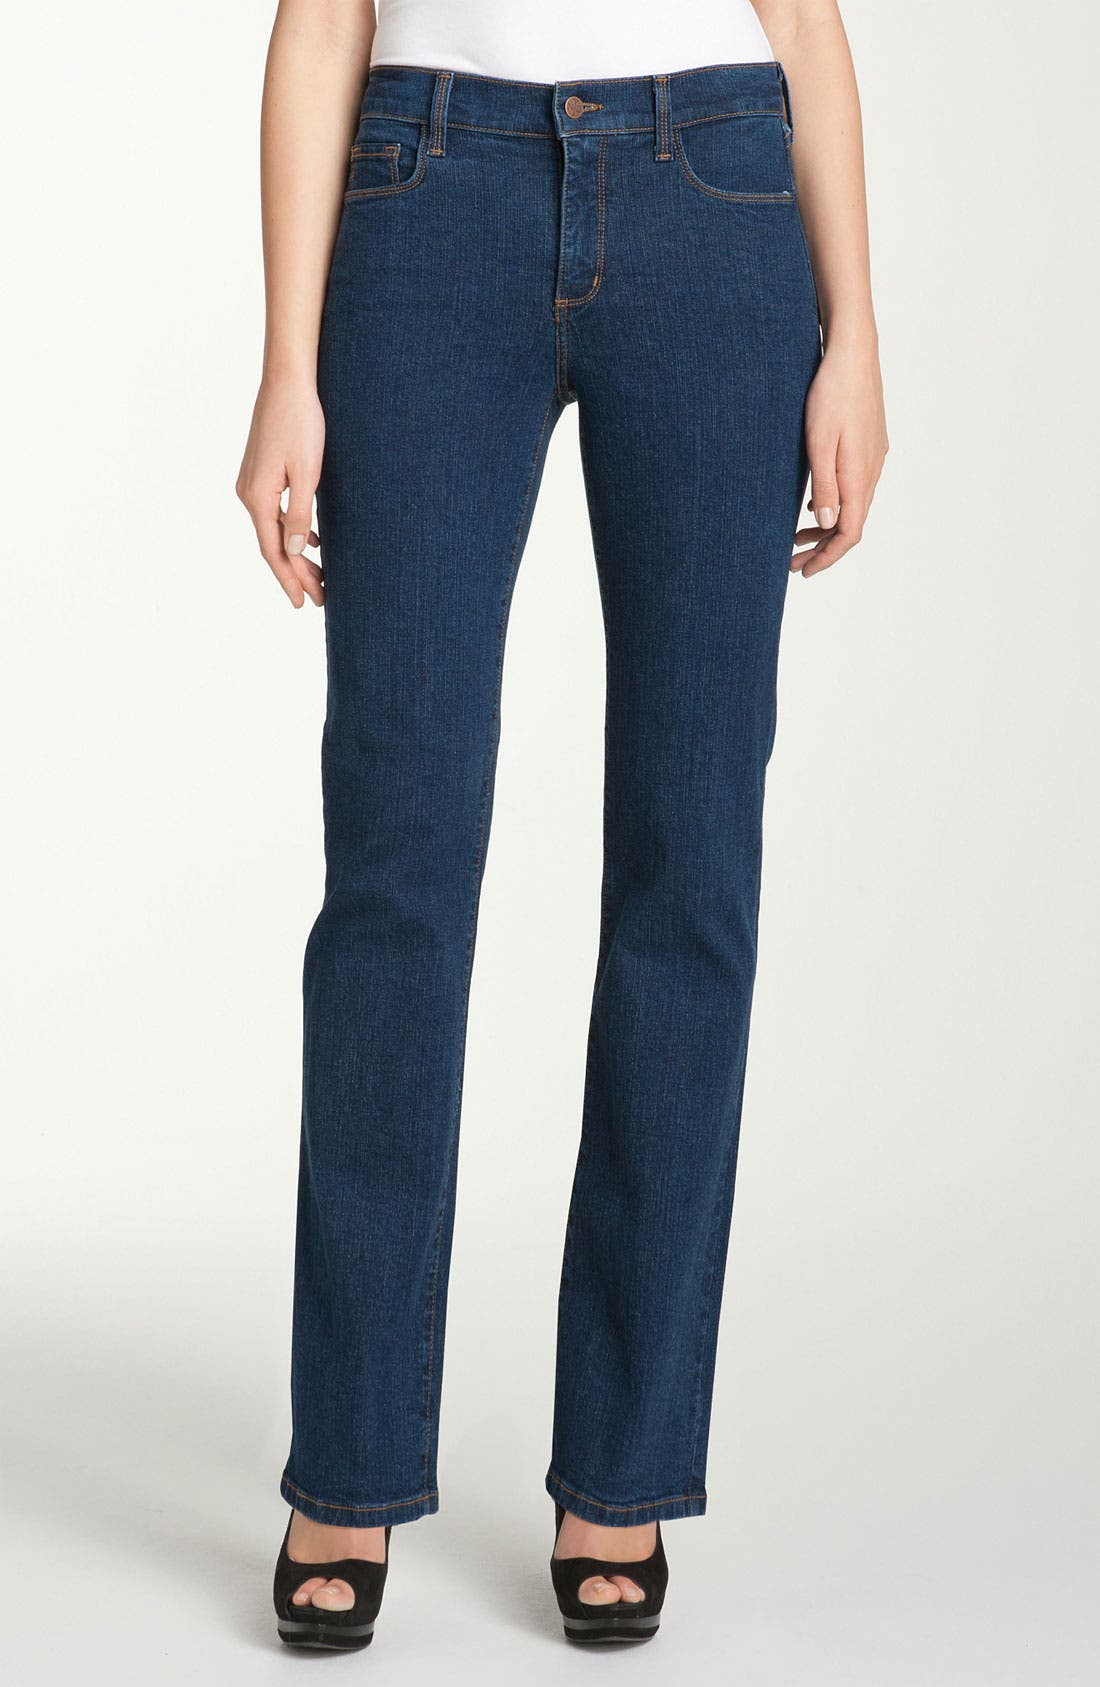 Alternate Image 1 Selected - NYDJ 'Marilyn' Straight Leg Stretch Jeans (Petite)